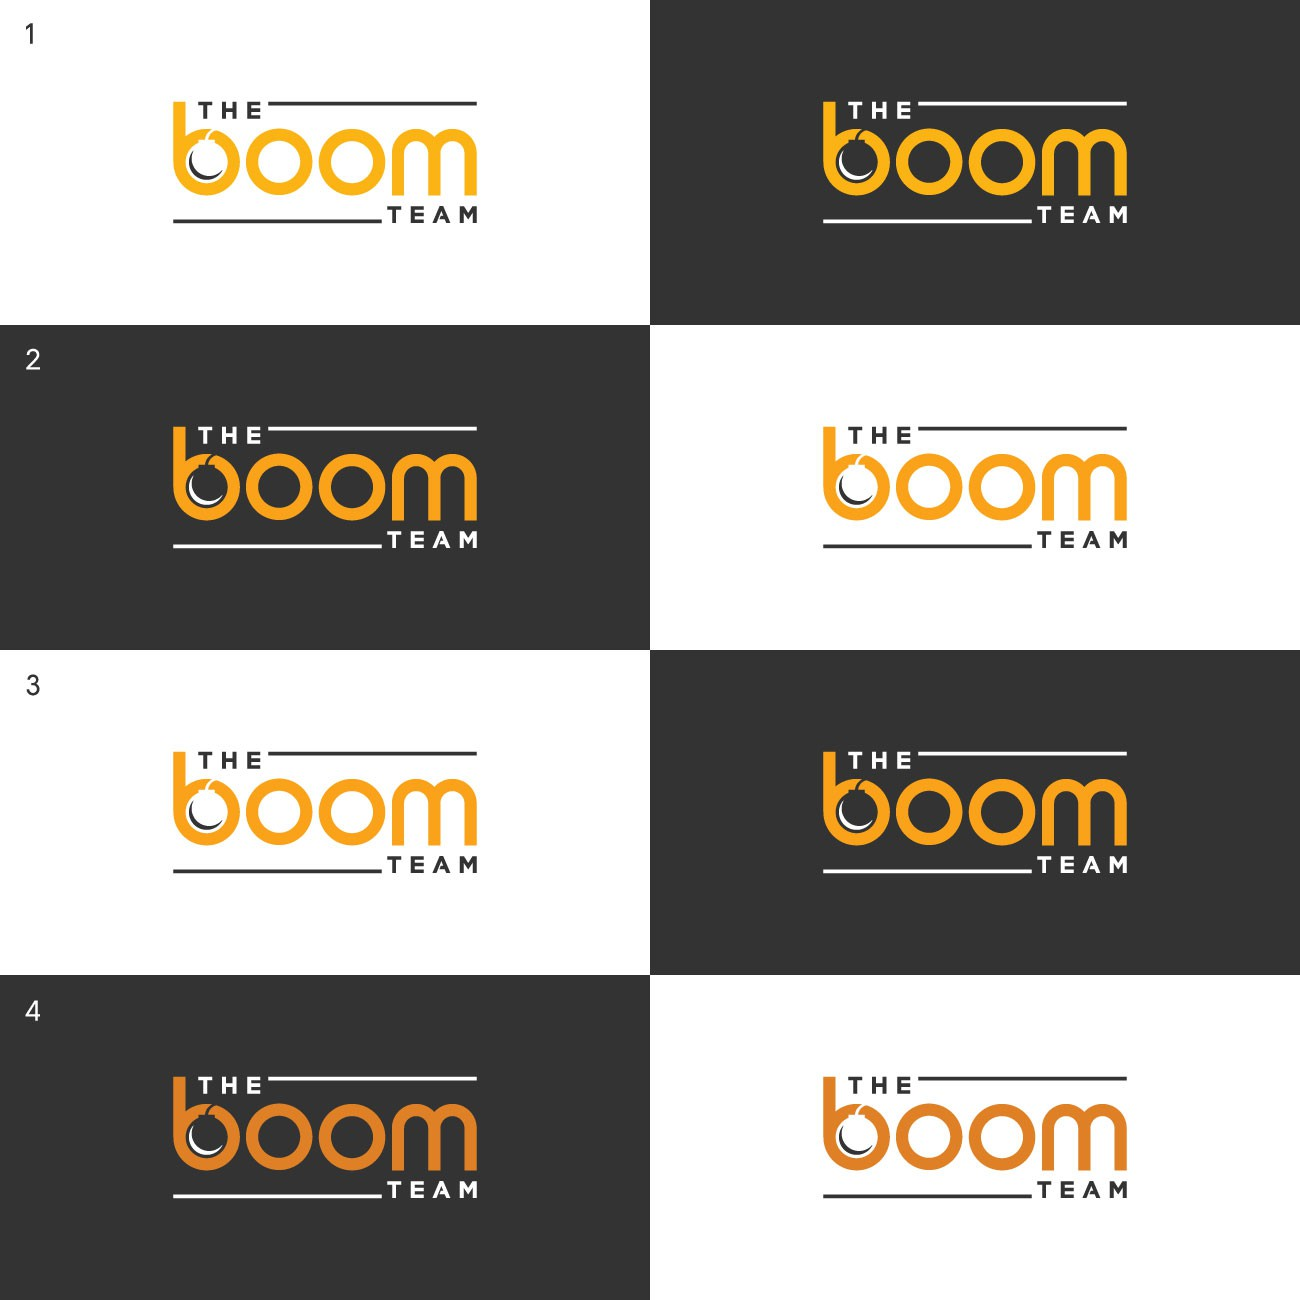 The Boom Team is looking for a fresh new logo!